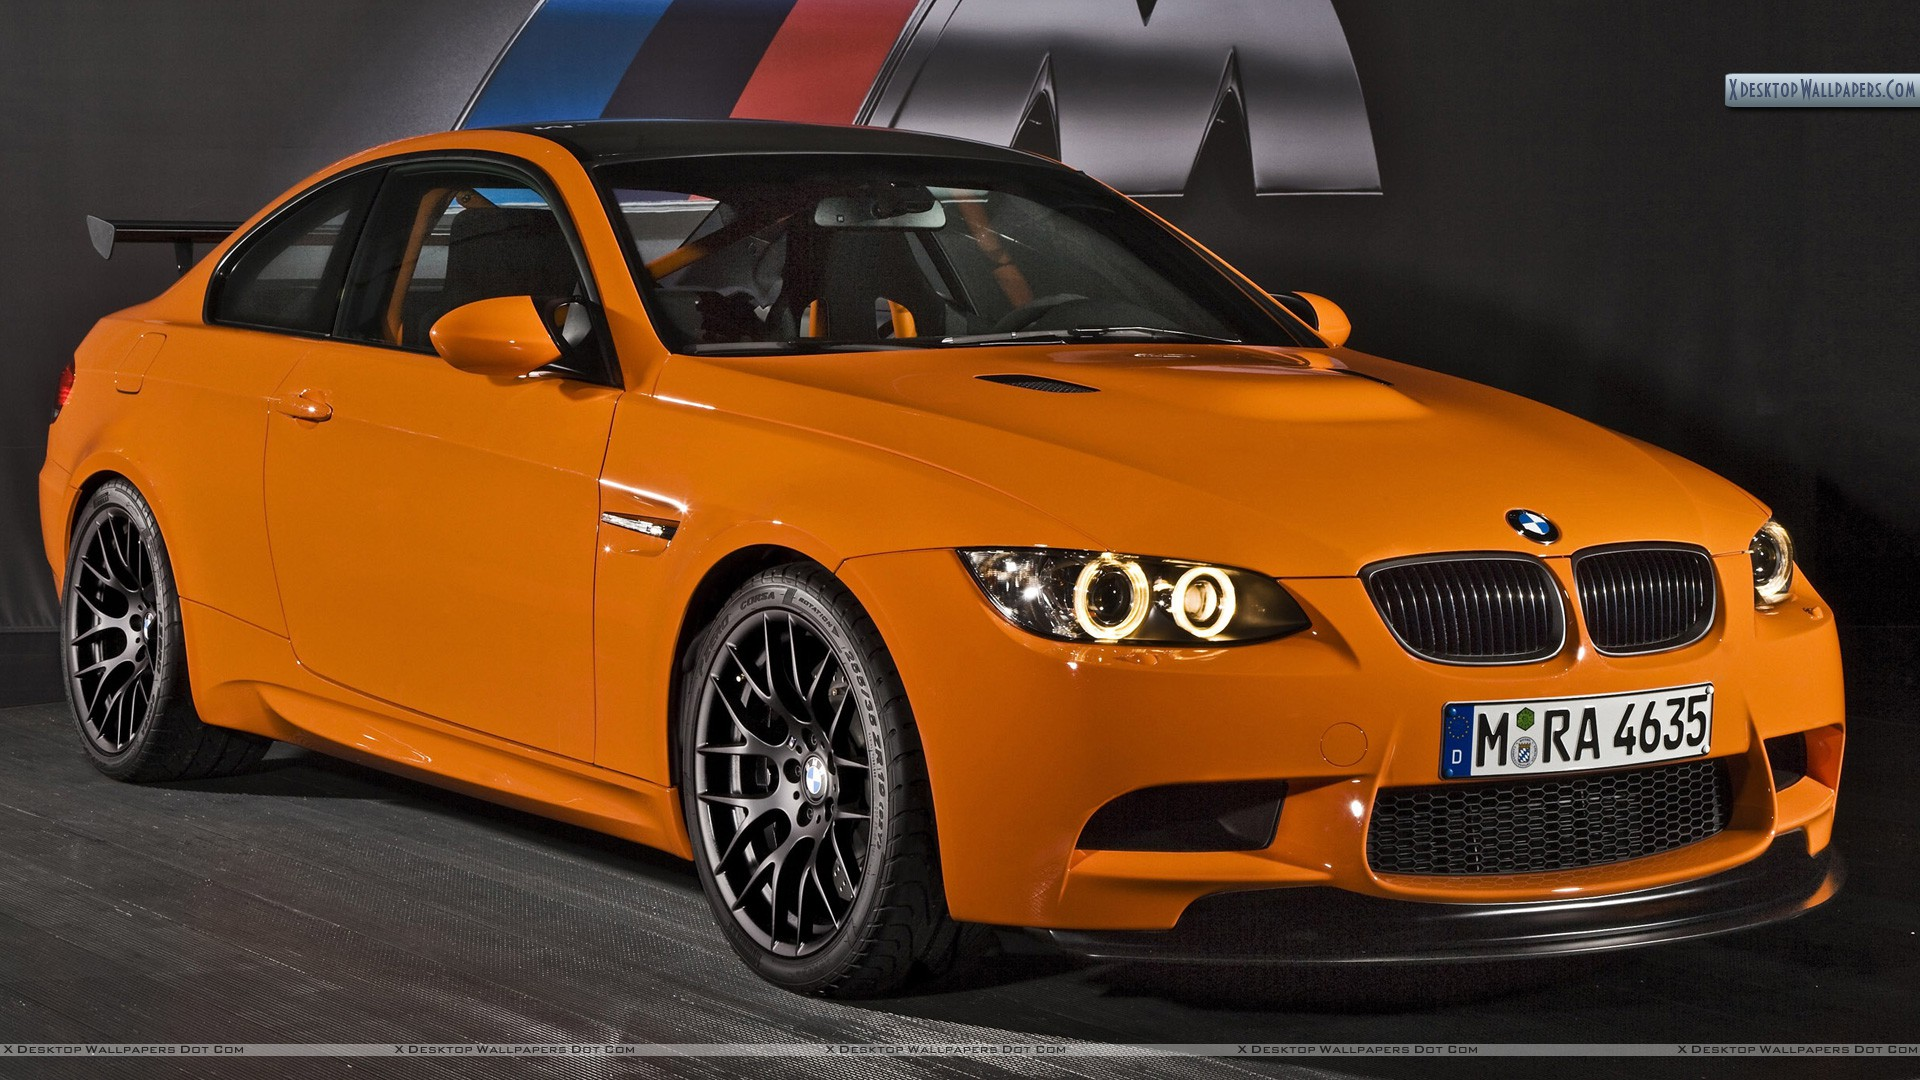 2010 Bmw M3 Gts Front Pose In Orange Color Wallpaper